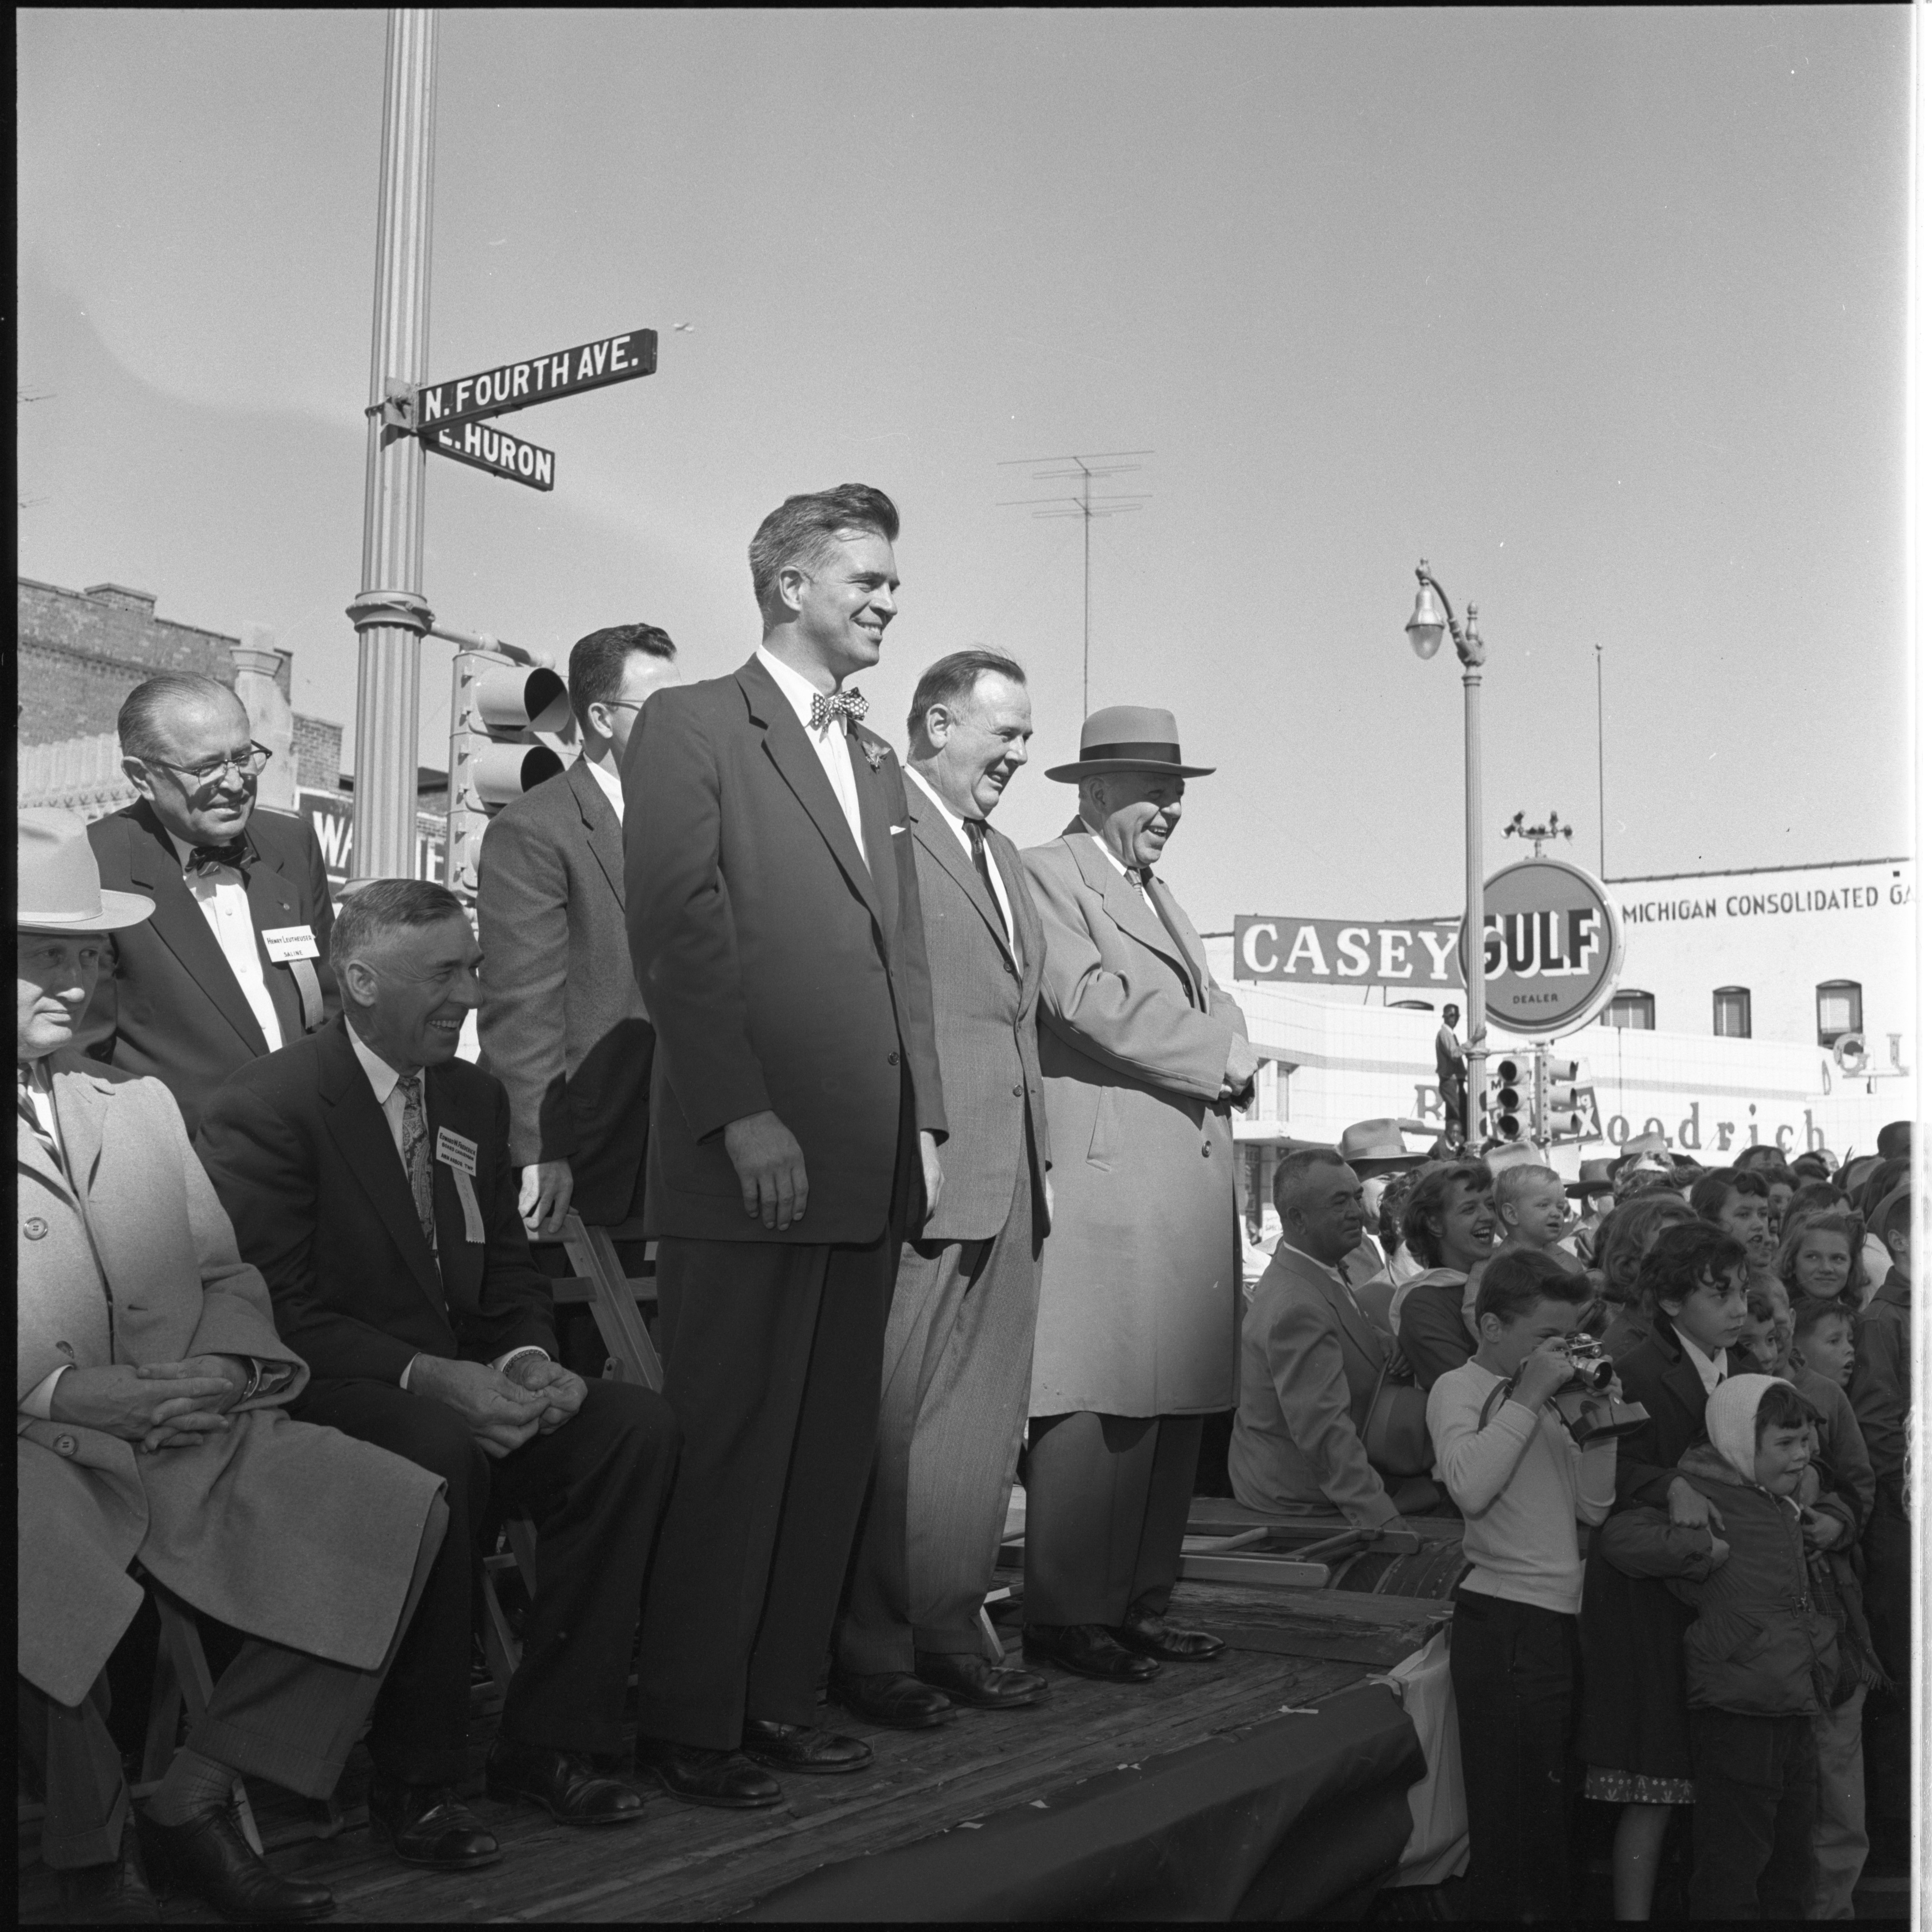 Michigan Dignitaries Watch The Washtenaw County Building Dedication Parade, October 1956 image